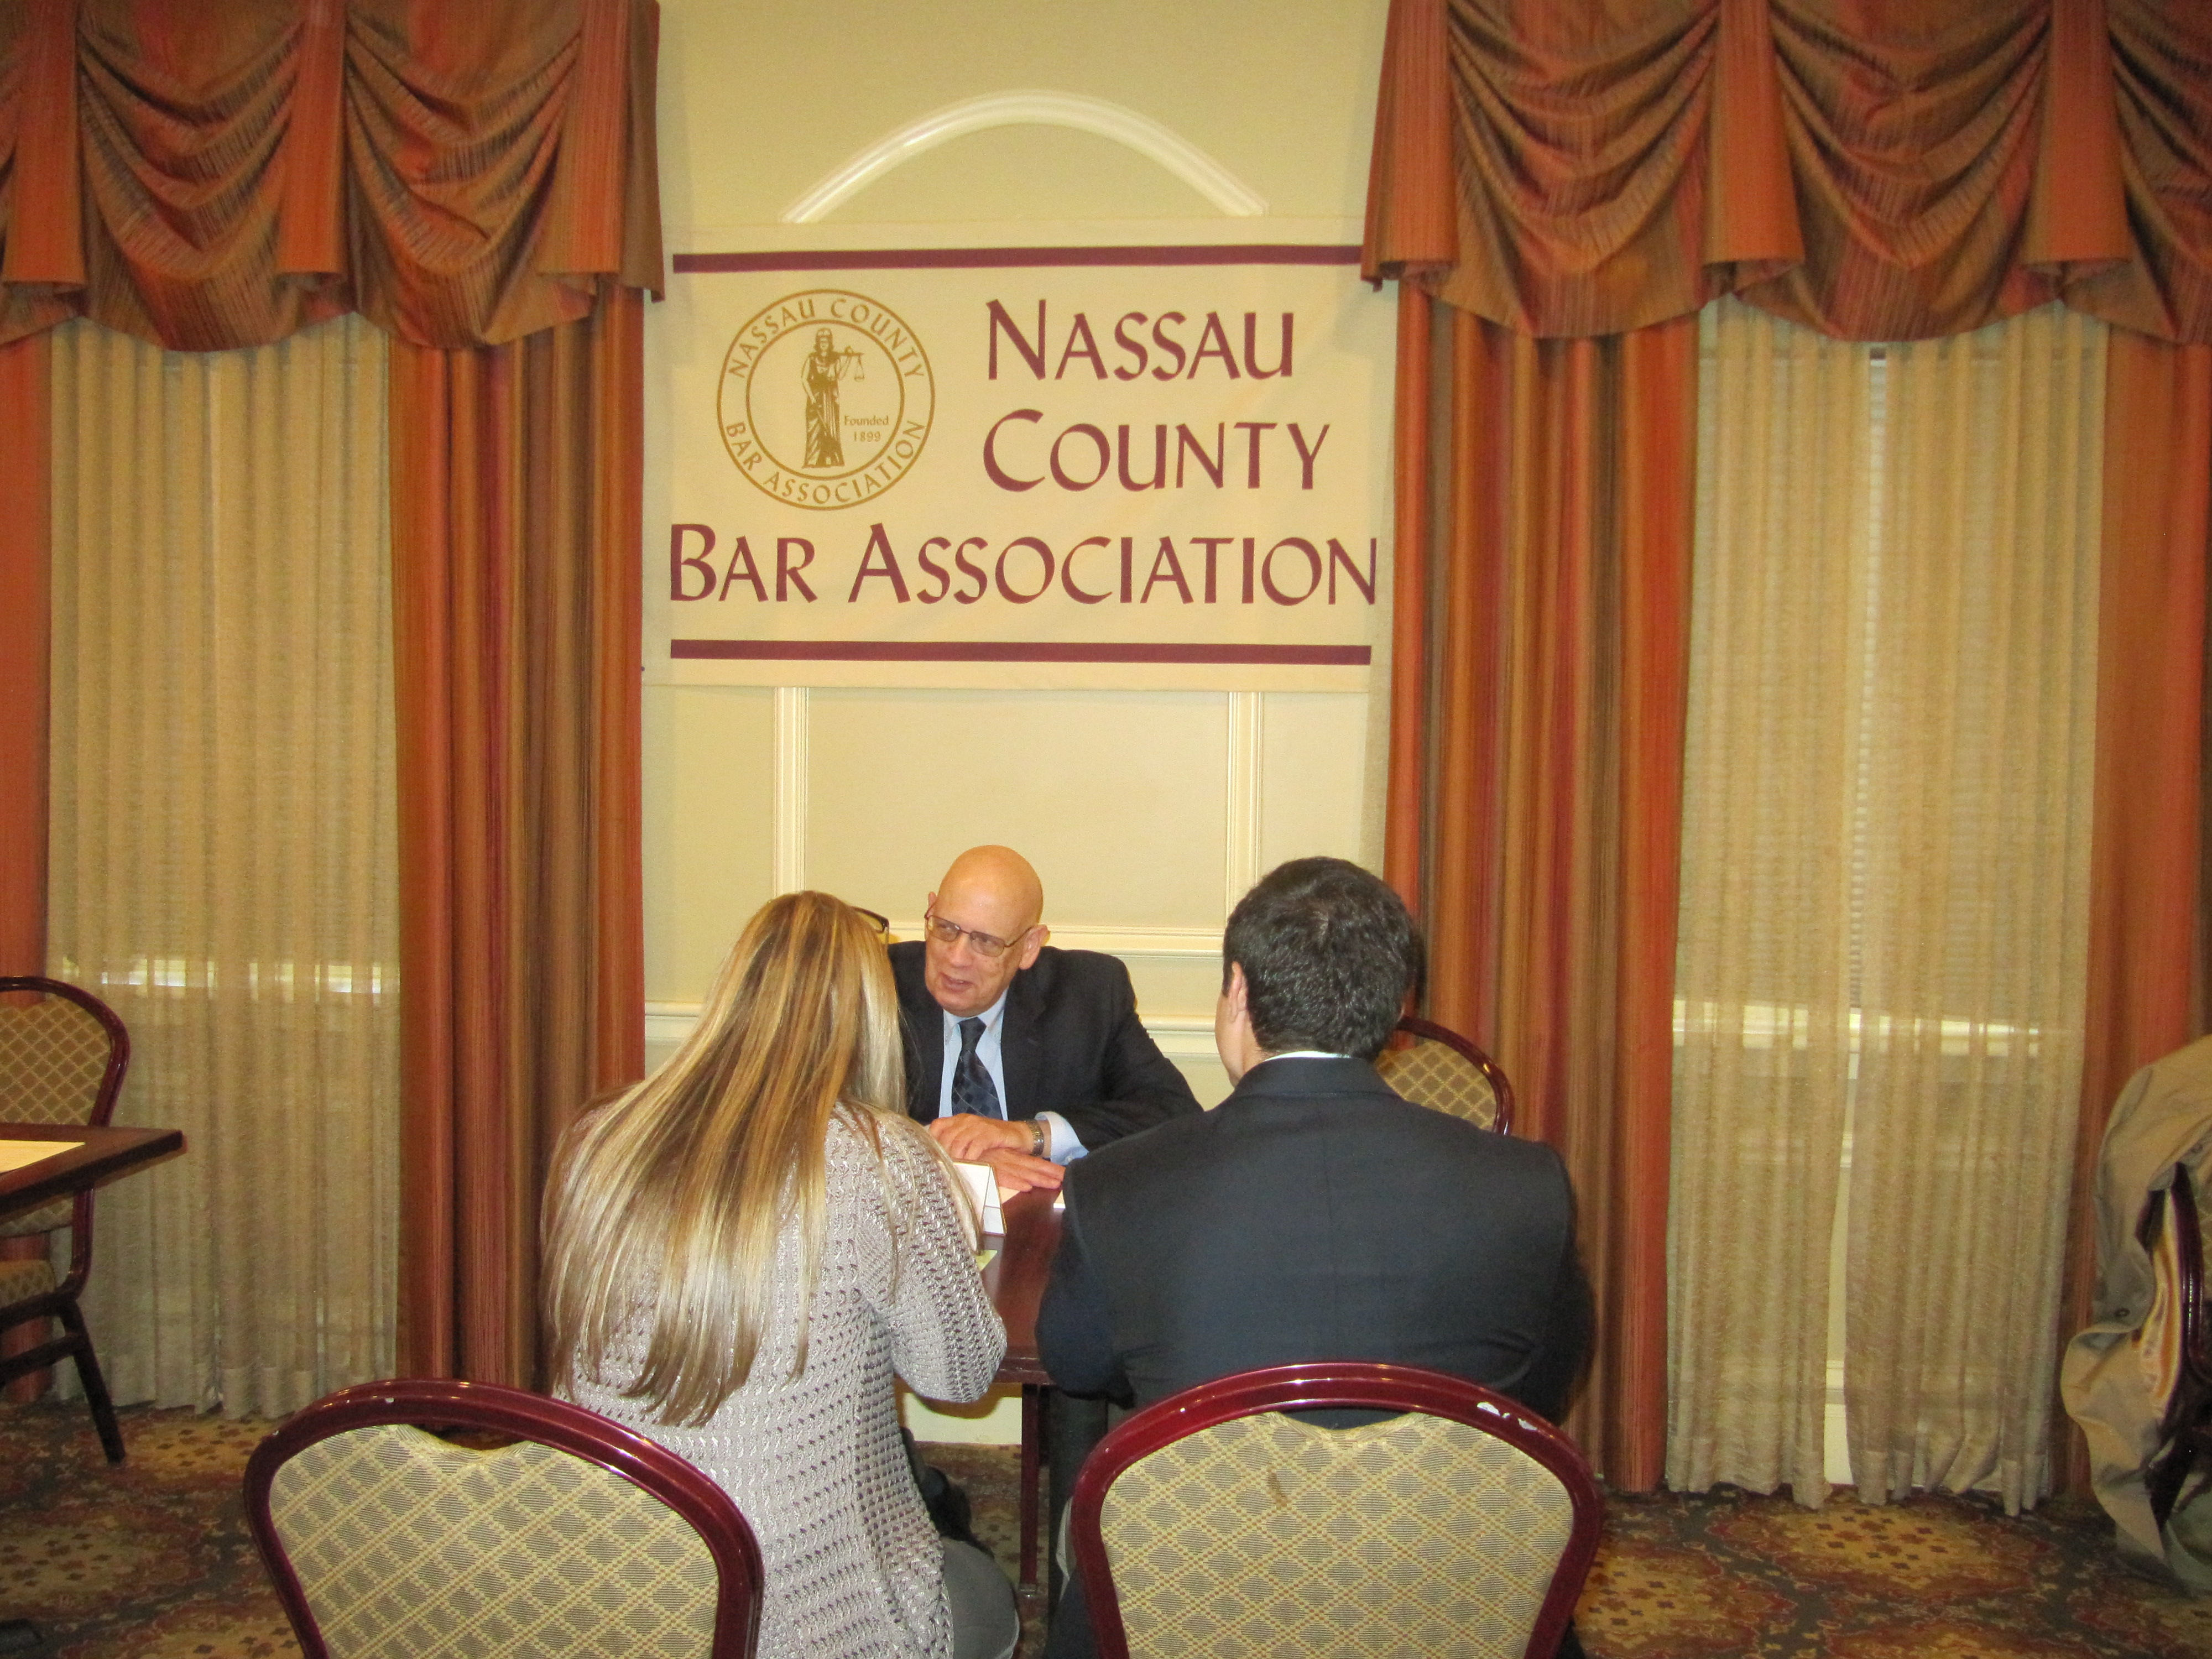 Nassau County Bar Association hosts monthly mortgage